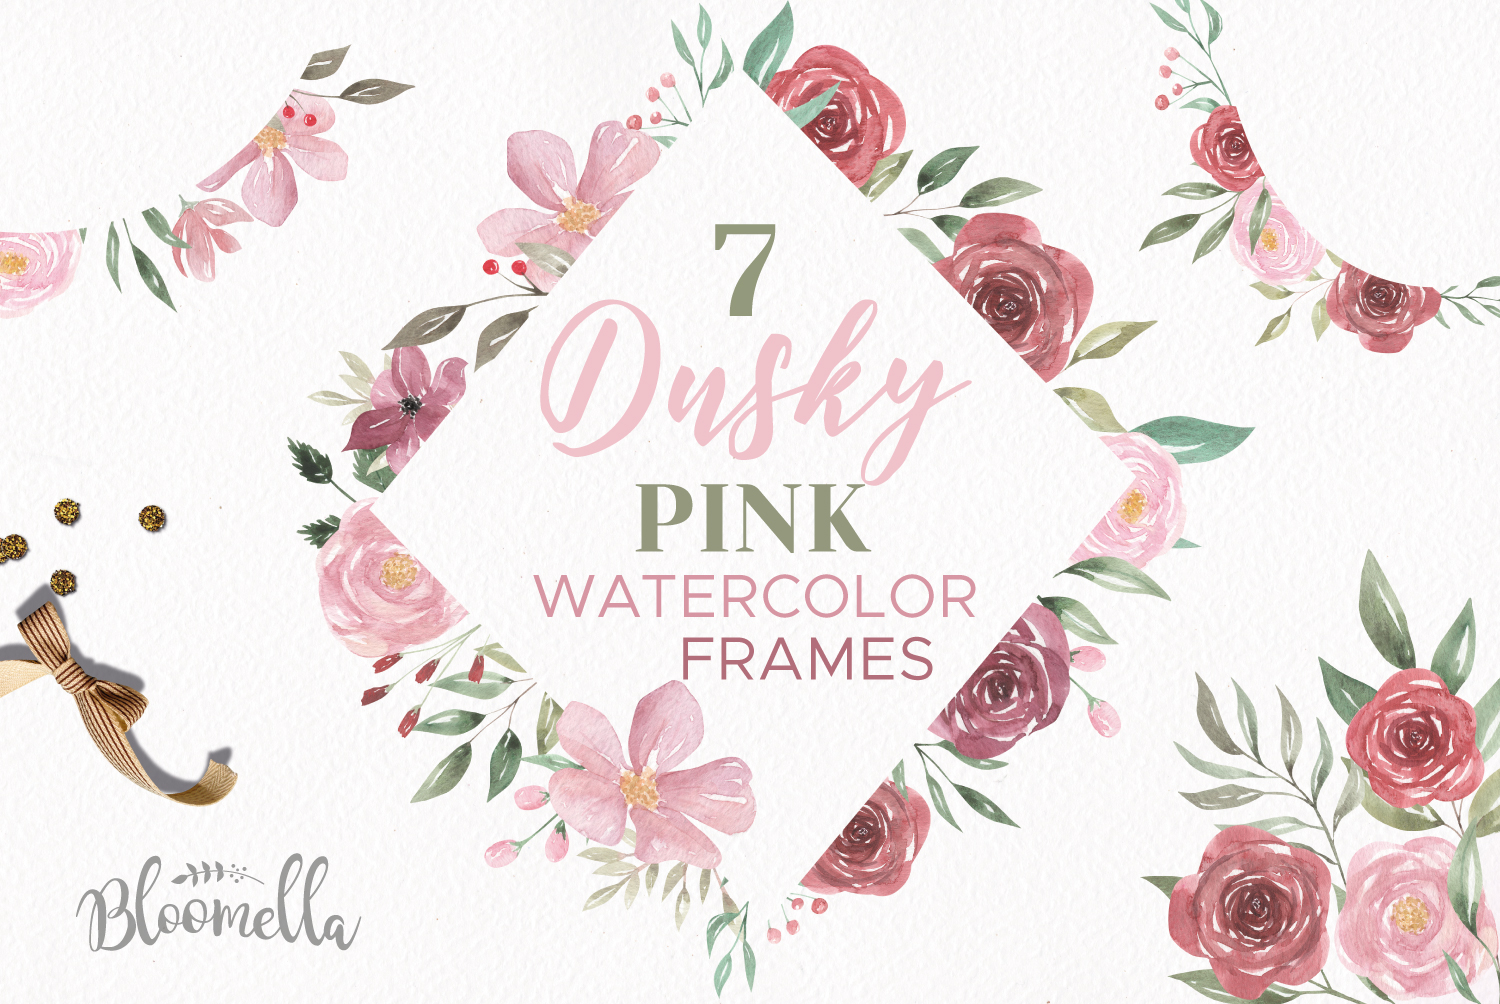 Download Free 7 Watercolour Dusky Frame Clipart Graphic By Bloomella Creative Fabrica for Cricut Explore, Silhouette and other cutting machines.